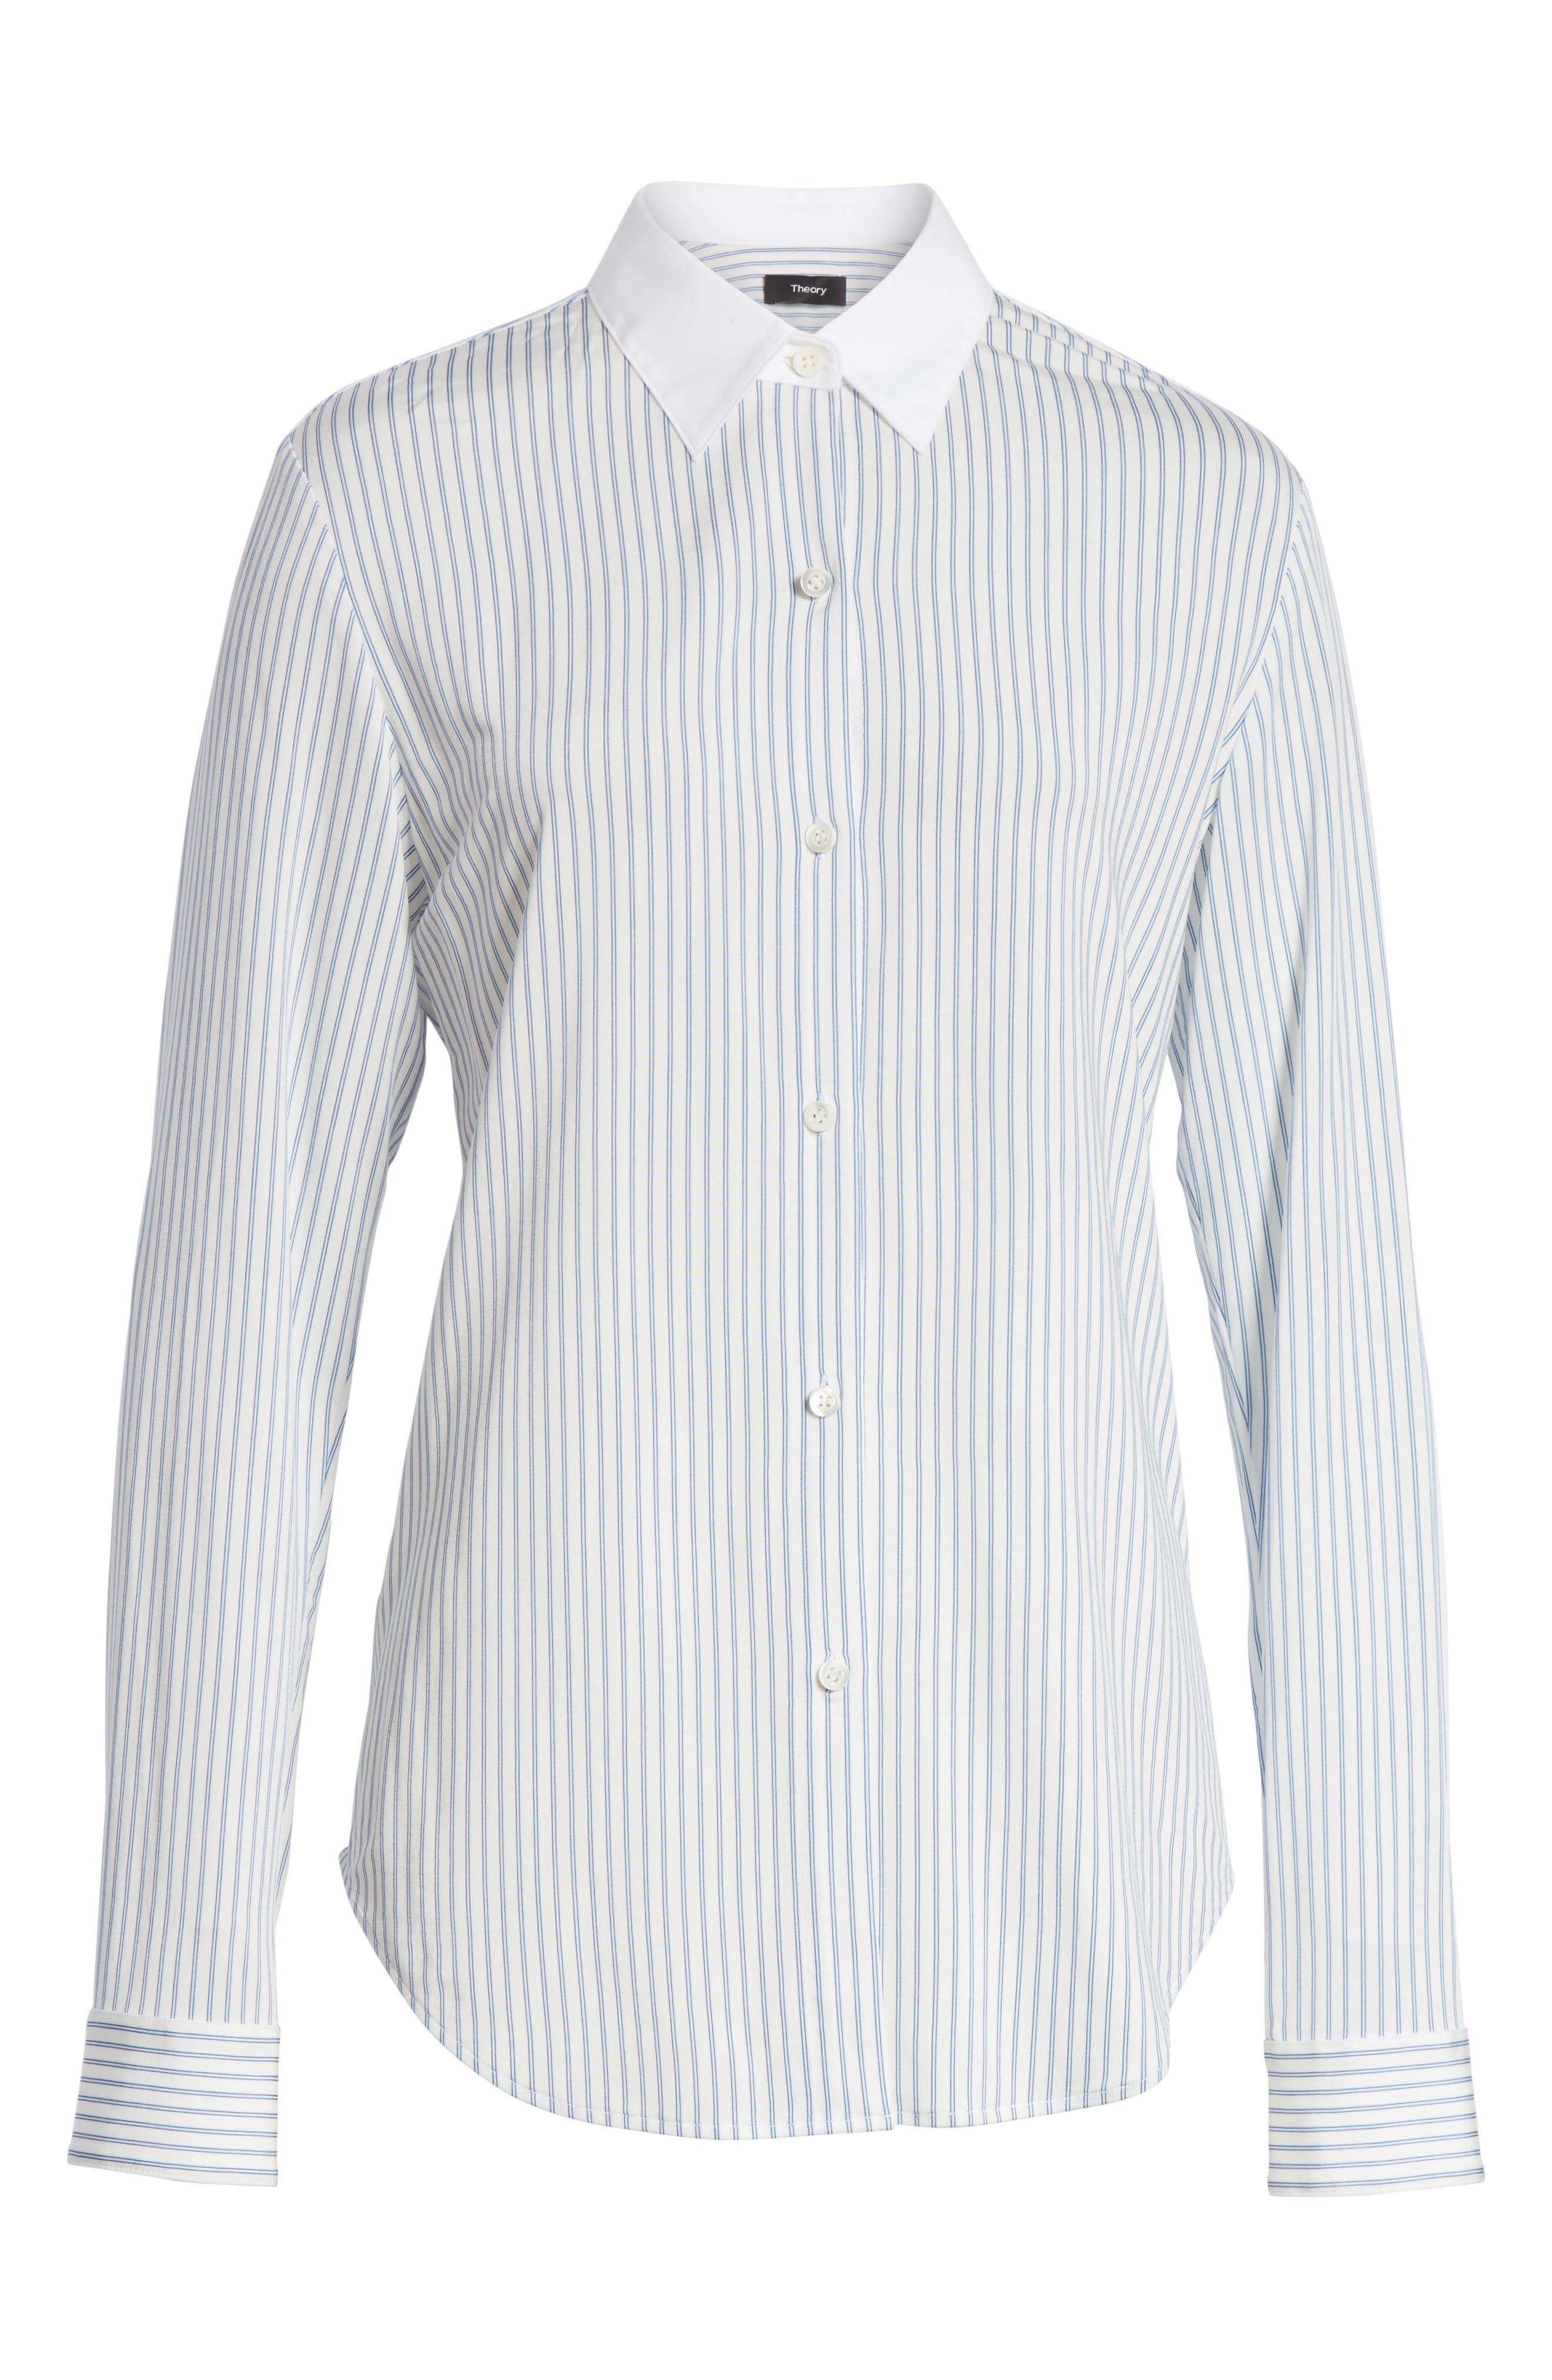 Essential Stripe Jersey Shirt,                             Alternate thumbnail 6, color,                             115